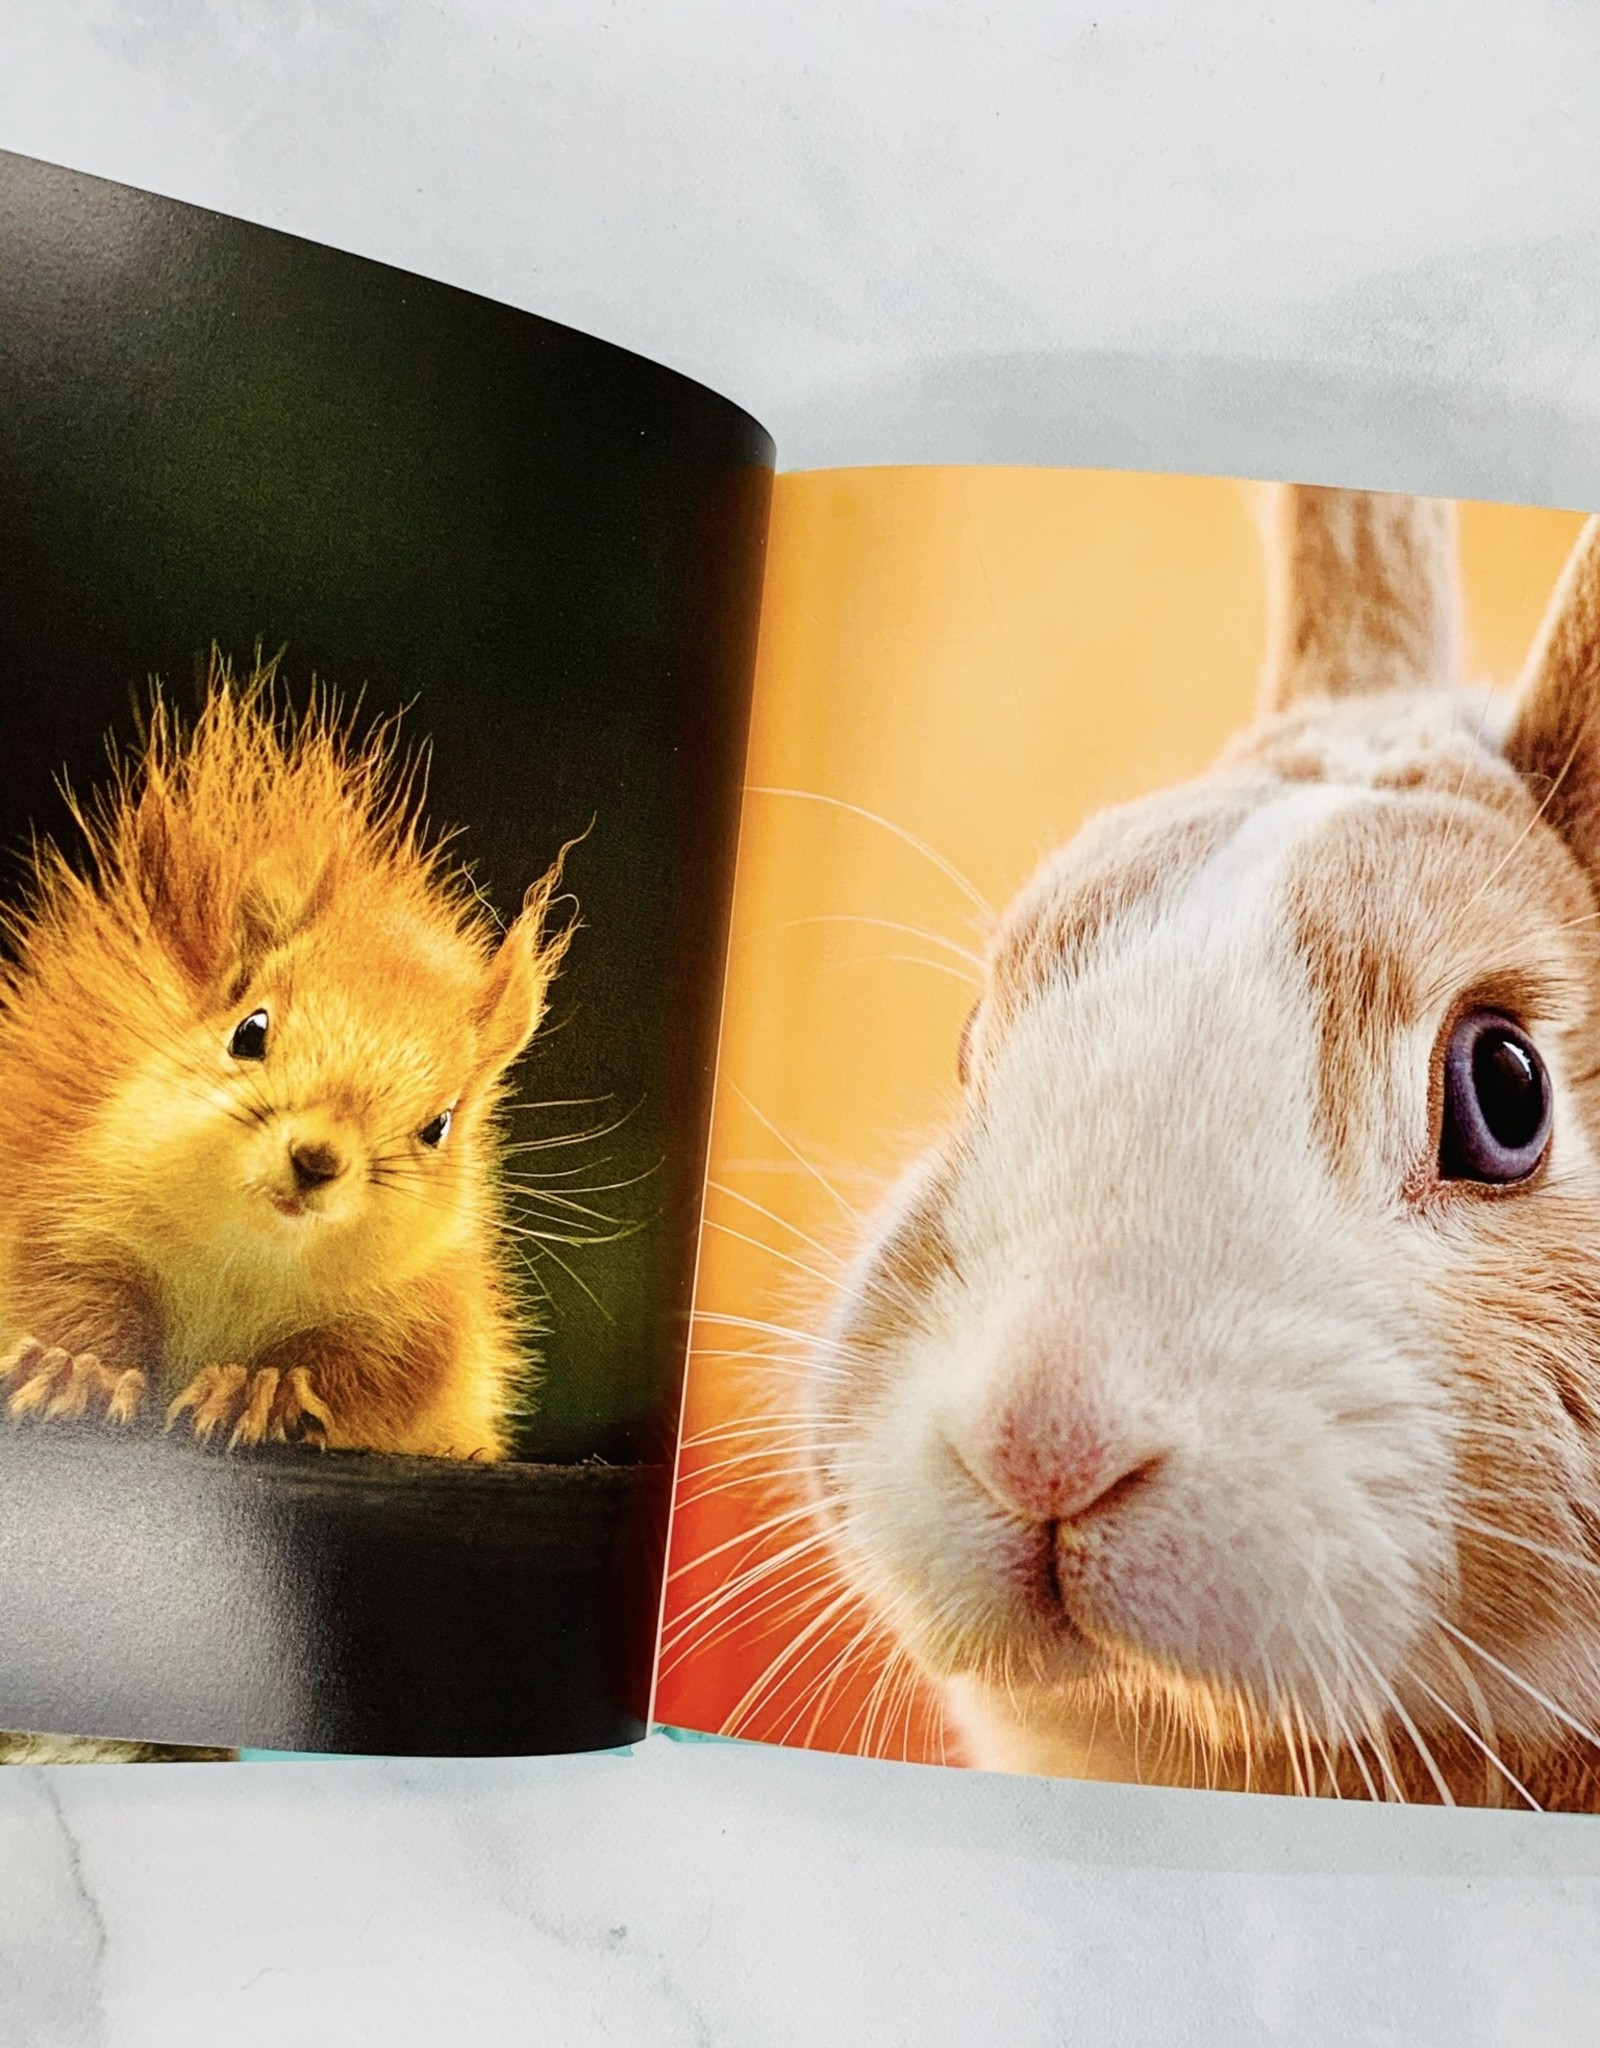 RANDOMHOUSE This Book Is Literally Just Pictures of Cute Animals That Will Make You Feel Better